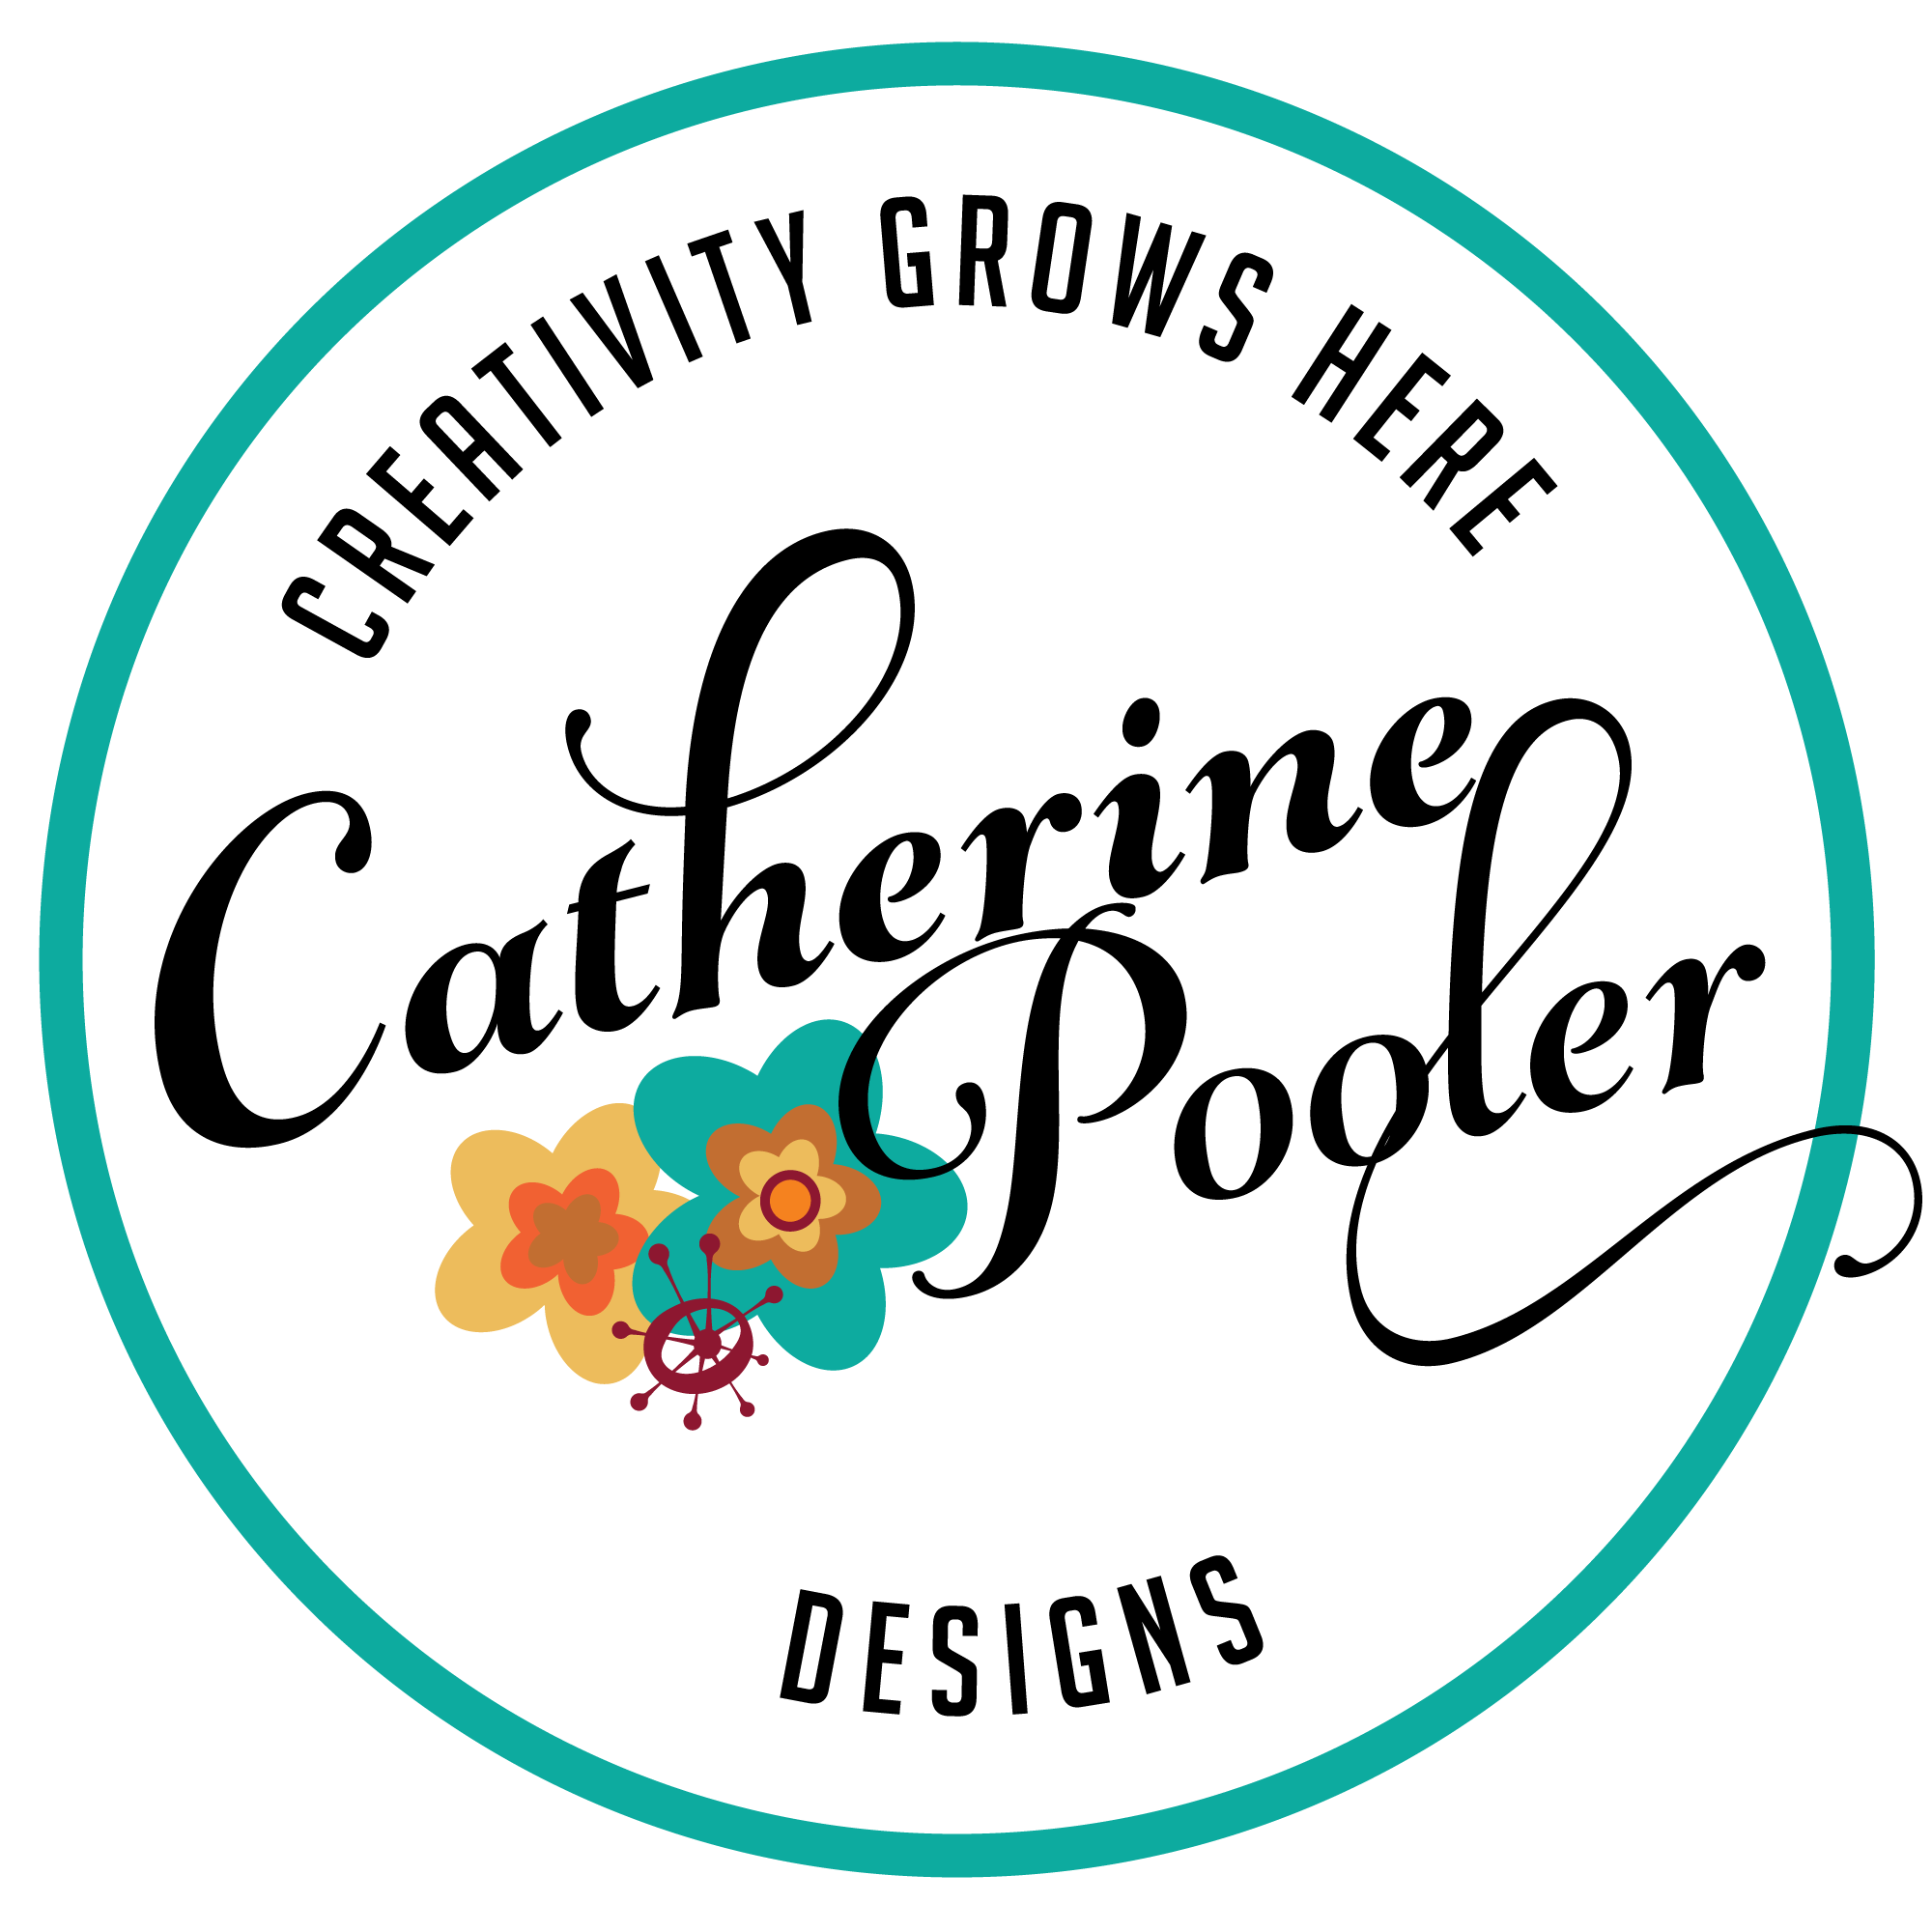 Catherine Pooler Designs